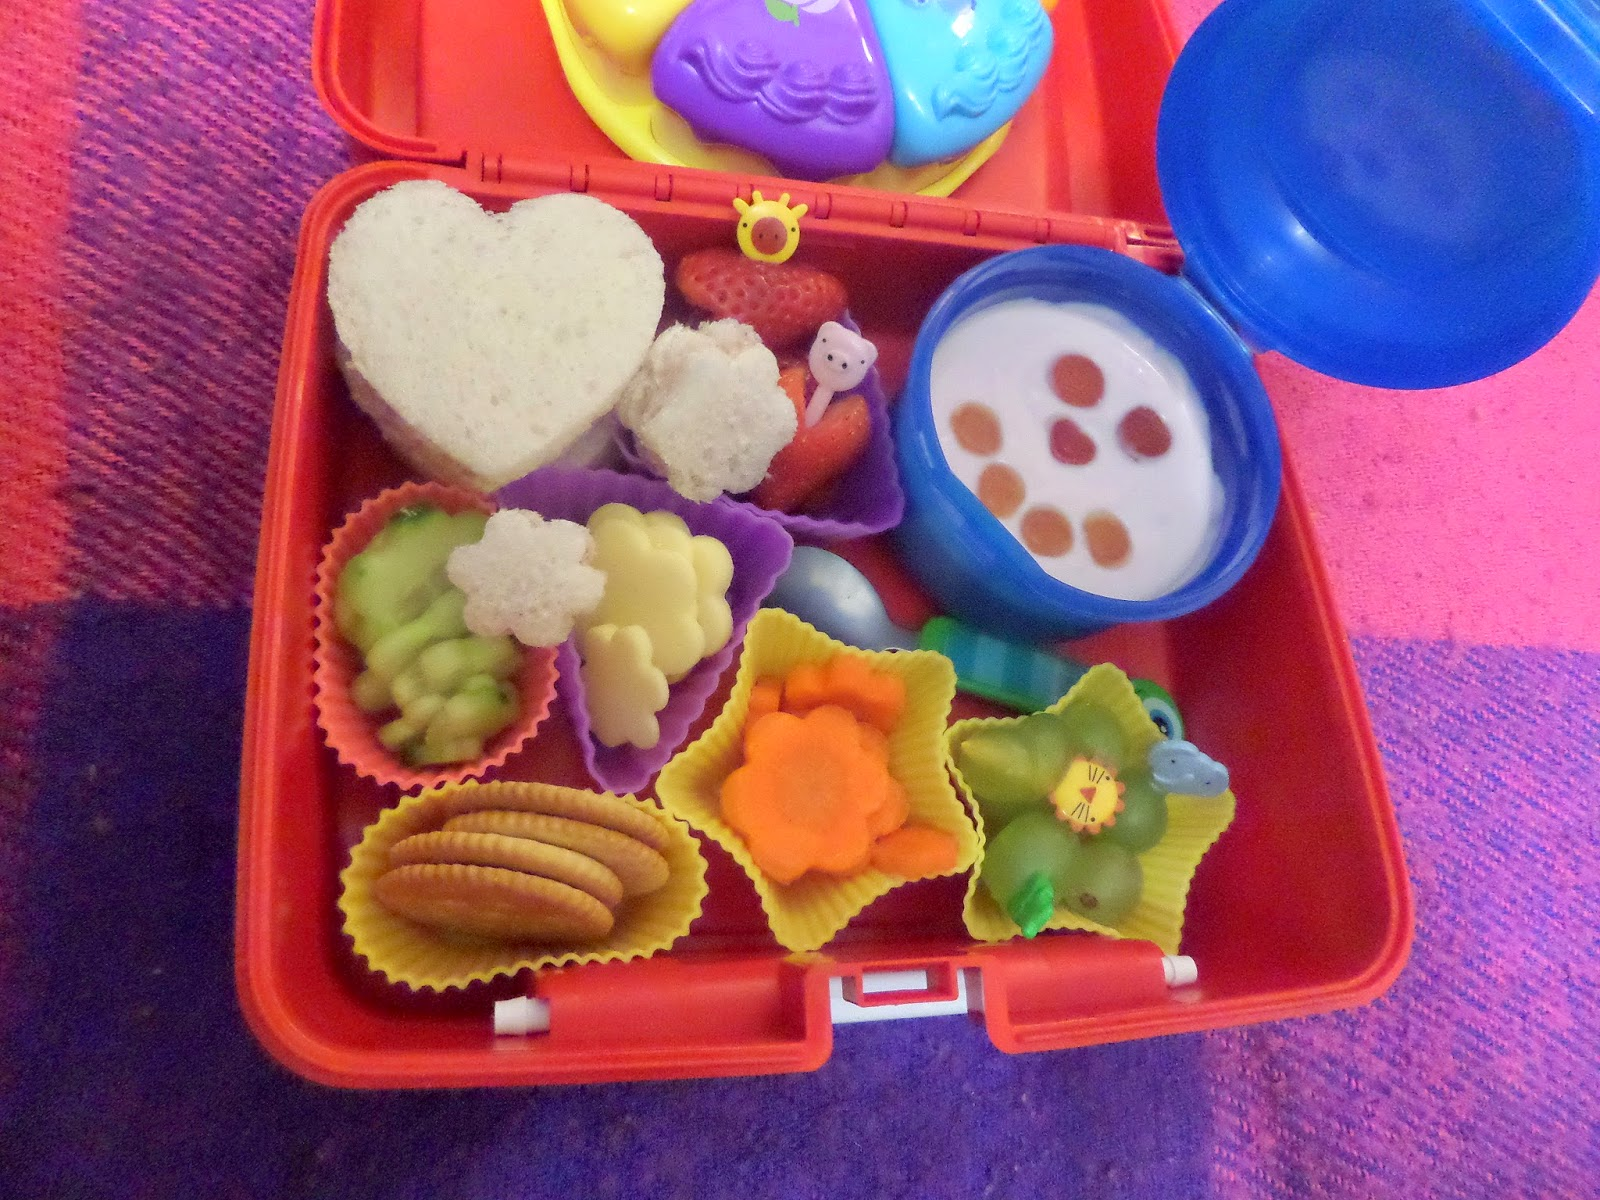 #shop #food #lunchbox #Bento